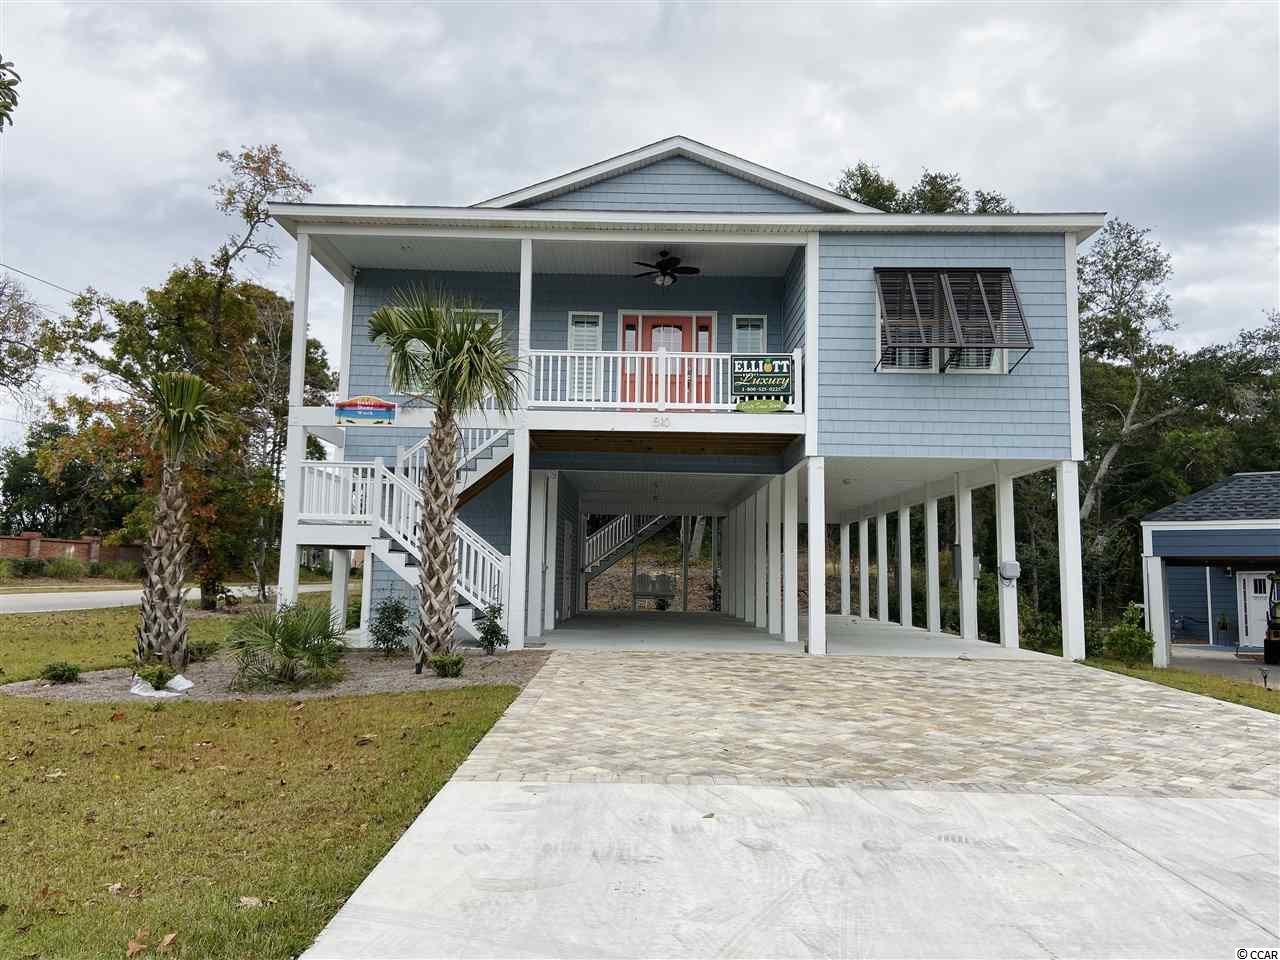 """FULLY FURNISHED 4 bedroom 3 bath raised beach house- with NO HOA!!! This young home was built just in 2018, and has SUCH a tasteful/rich feel. You will find recessed lighting, a great amount of storage space, quartz countertops throughout, and like new stainless steel appliances, just to name a few of this homes many features.   Sitting along """"Hillside Drive"""", this home shines! ...Less than A MILE away from Main Street, Ocean Drive, and most importantly- THE BEACH!!  This home is turnkey ready and would make a wonderful primary home, OR vacation rental property. Put this one on your list!"""